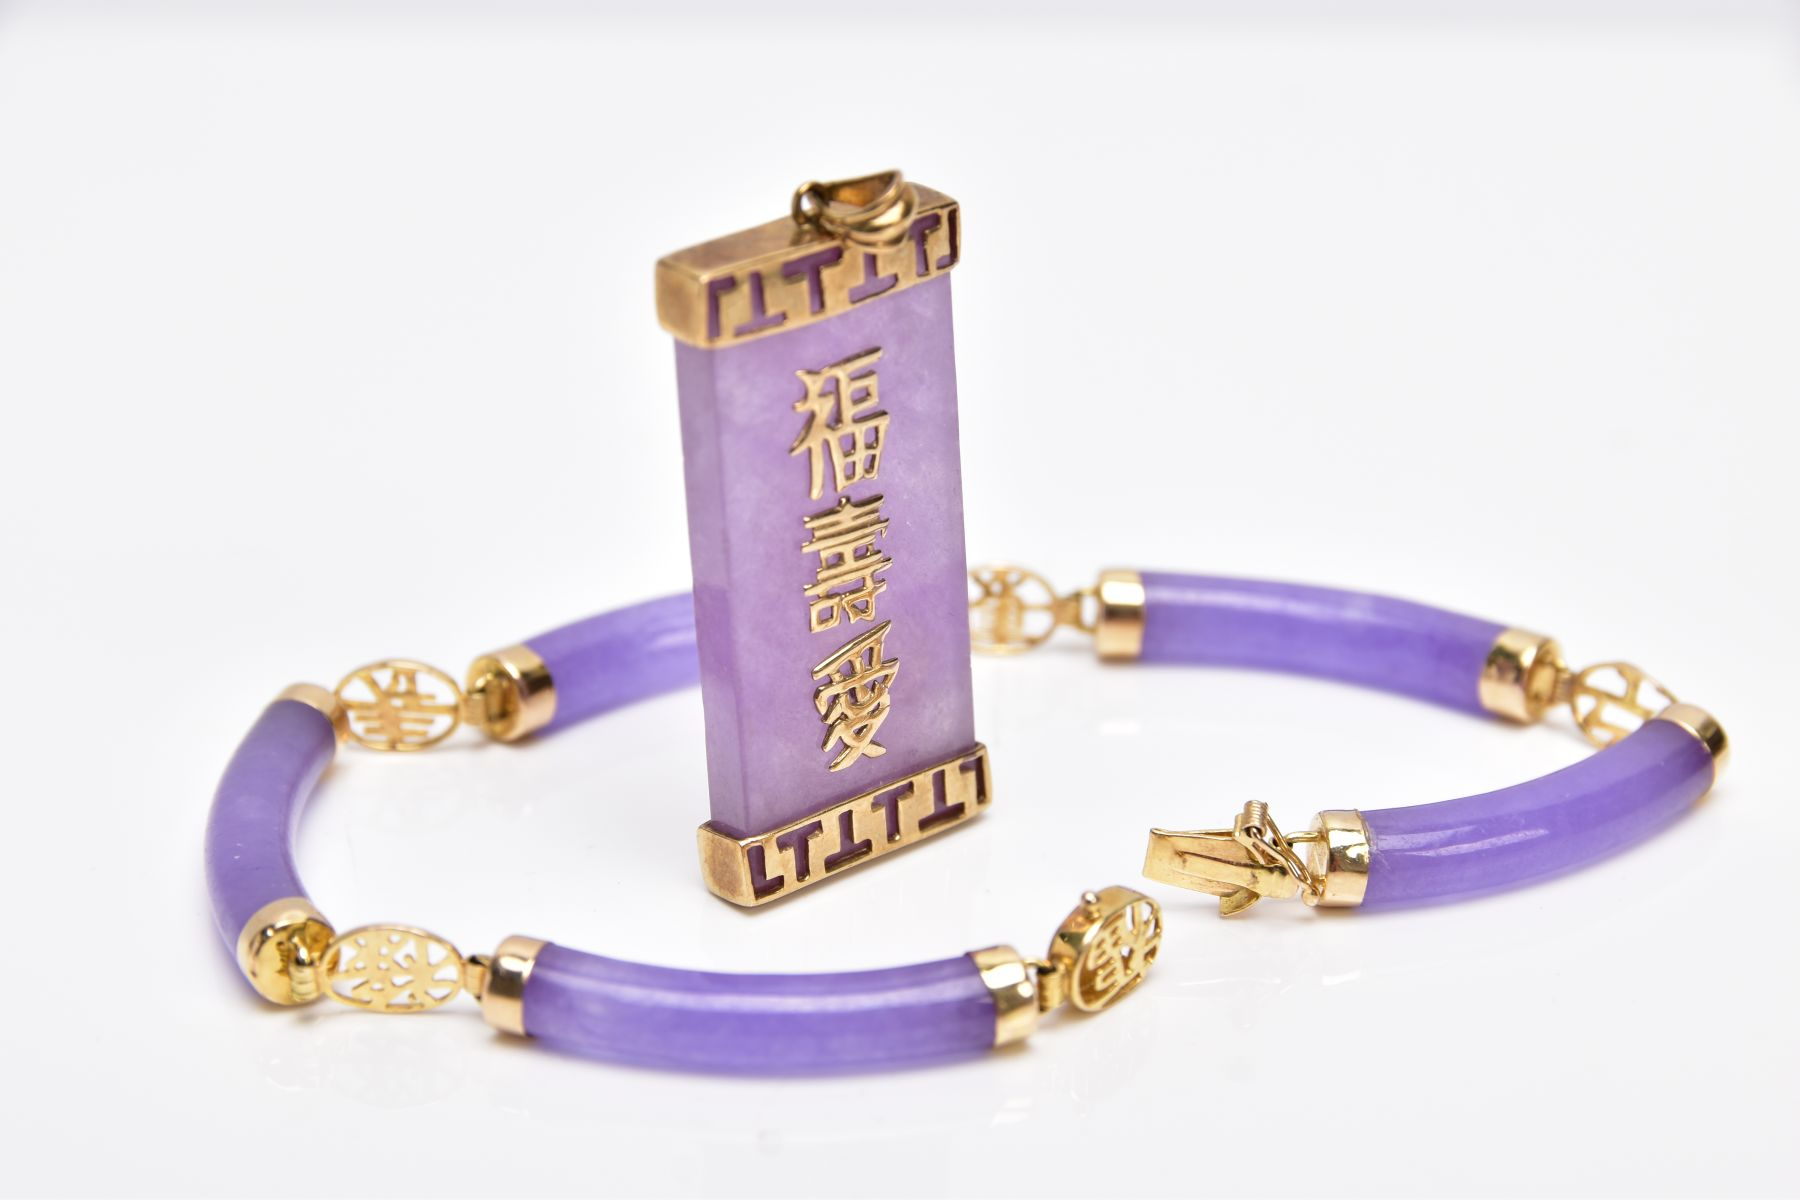 A 14CT GOLD LAVENDER JADE BRACELET AND A 9CT GOLD LAVENDER JADE PENDANT, the bracelet designed - Image 4 of 4